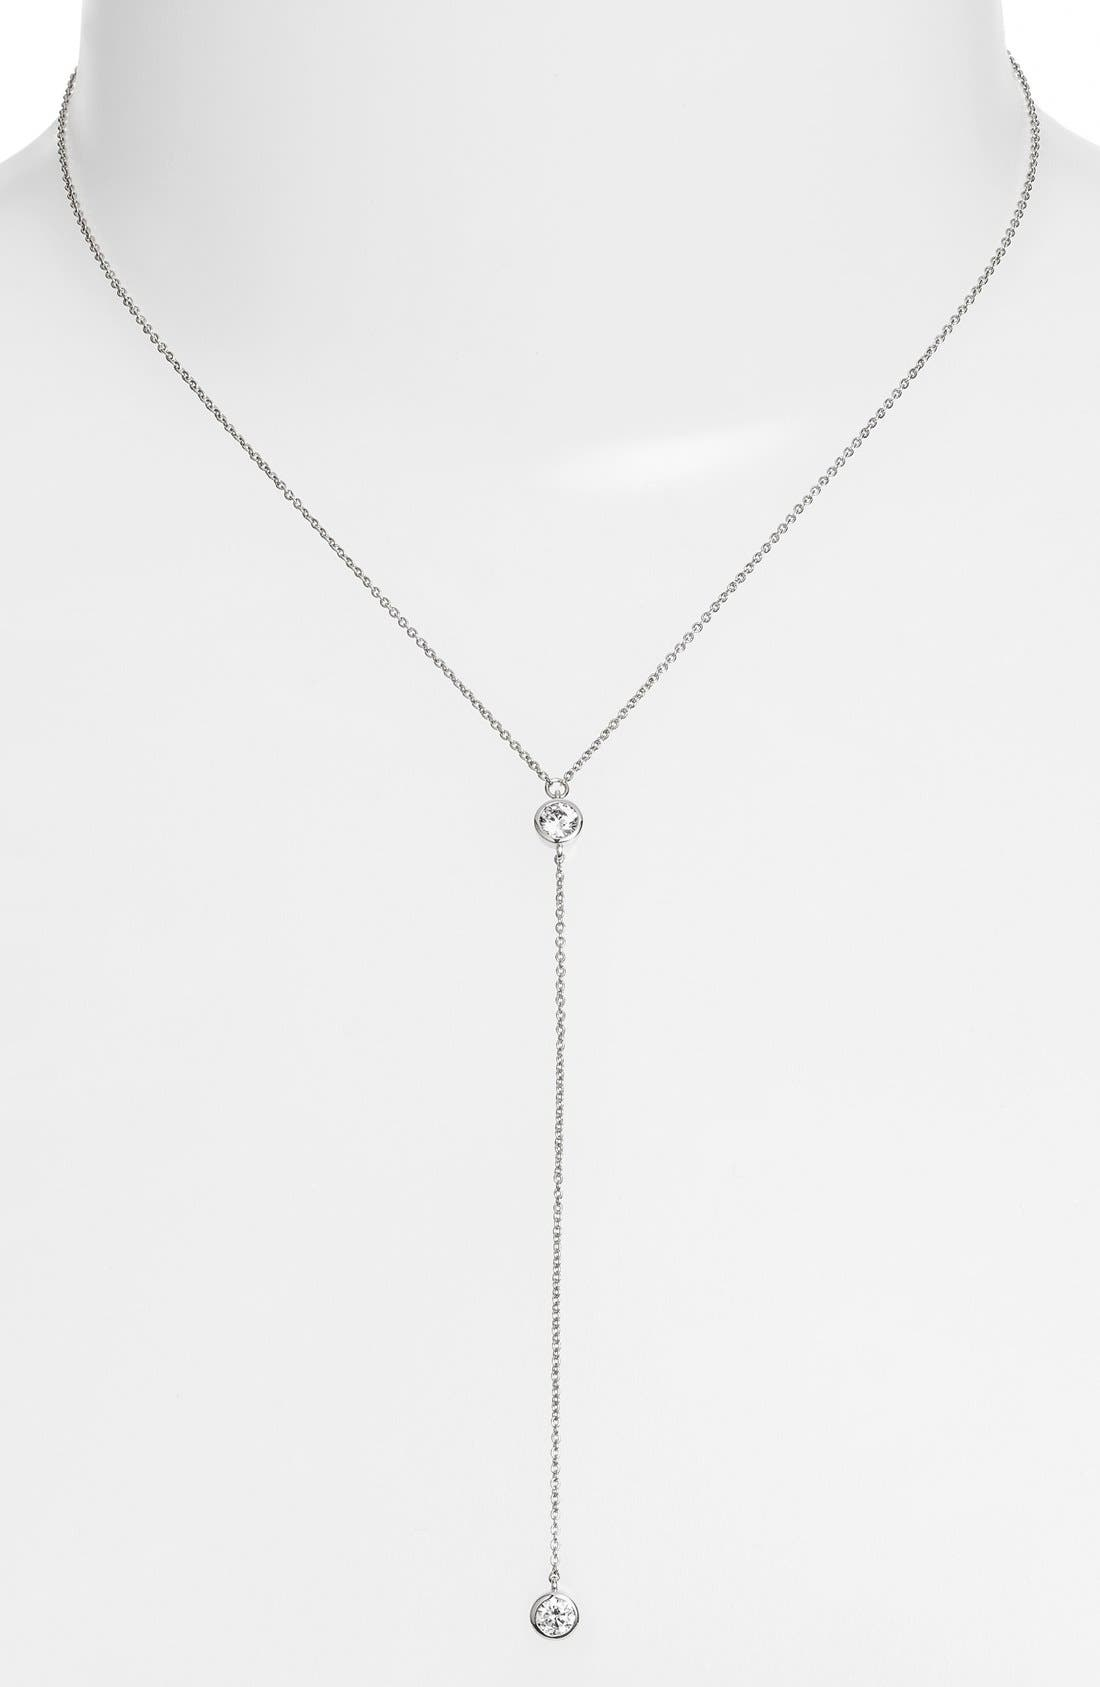 Main Image - Alainn Cubic Zirconia Lariat Necklace